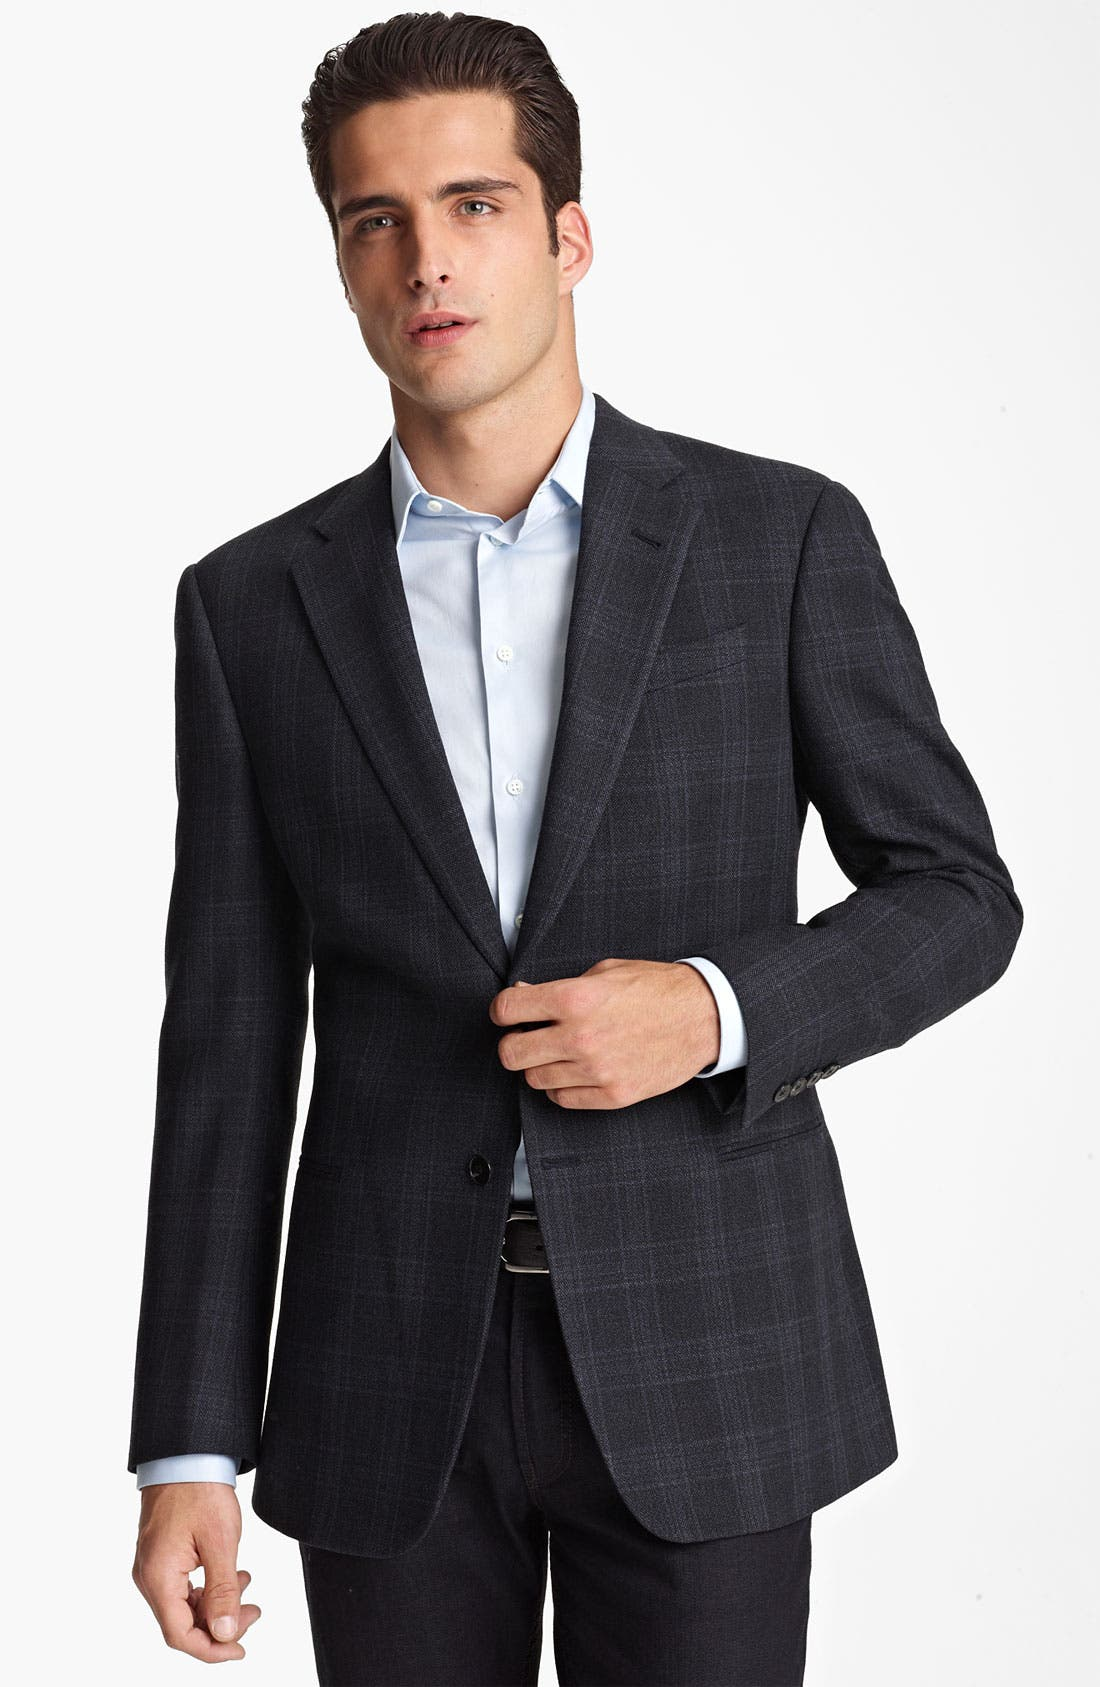 Alternate Image 1 Selected - Armani Collezioni 'Giorgio' Trim Fit Plaid Blazer